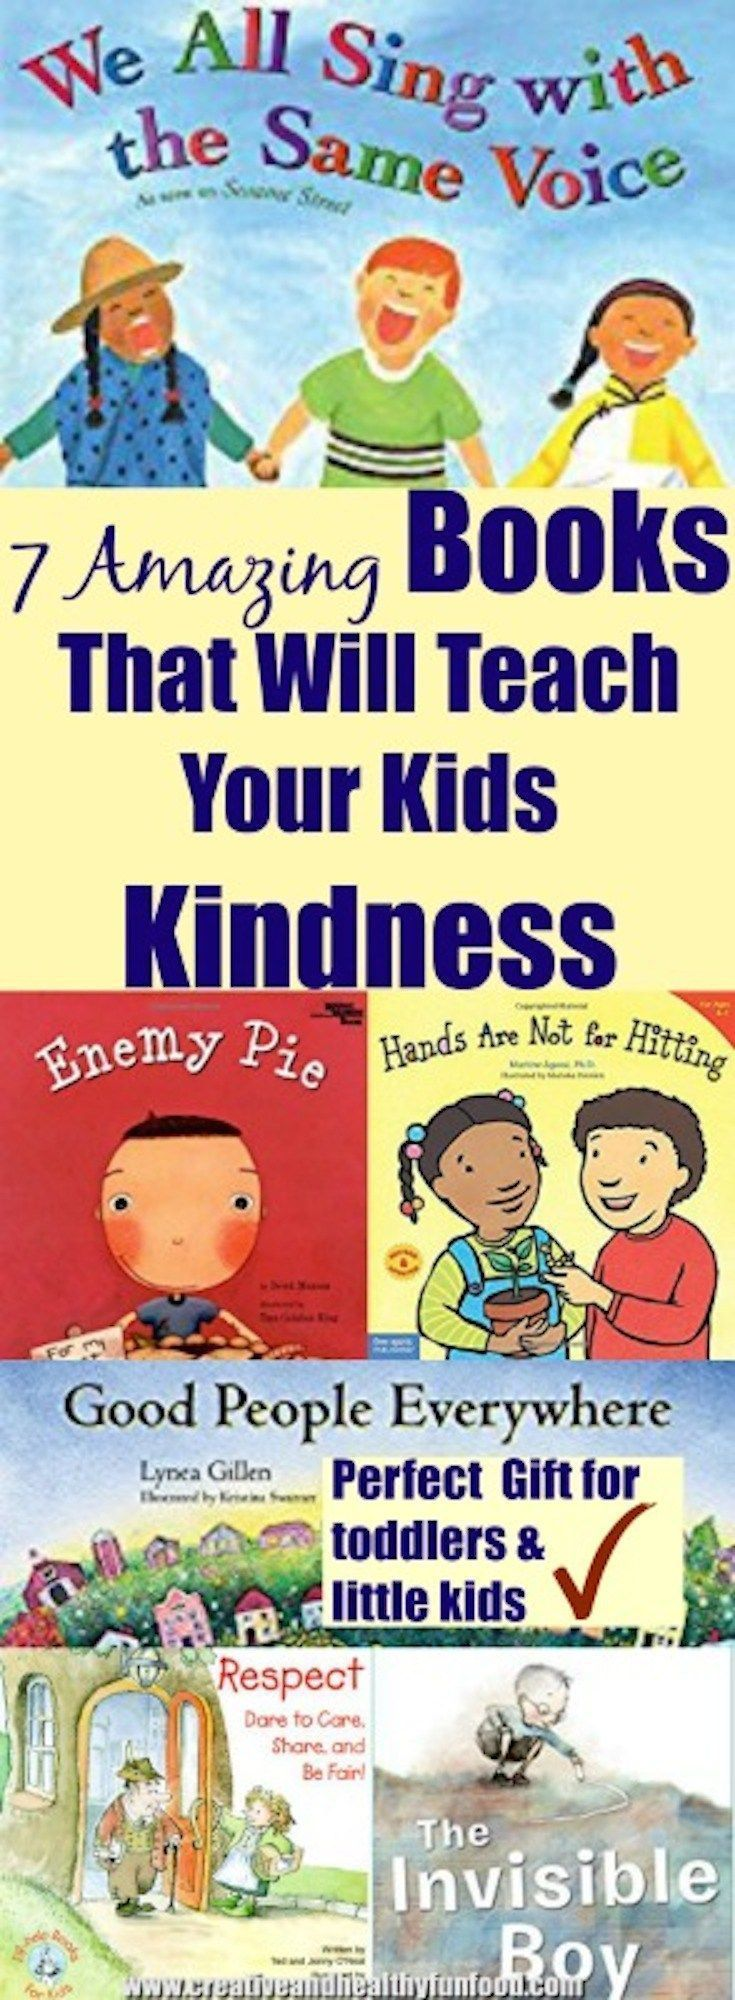 7 Amazing Books That Will Teach Your Kids Kindness #kindness #parenting #books